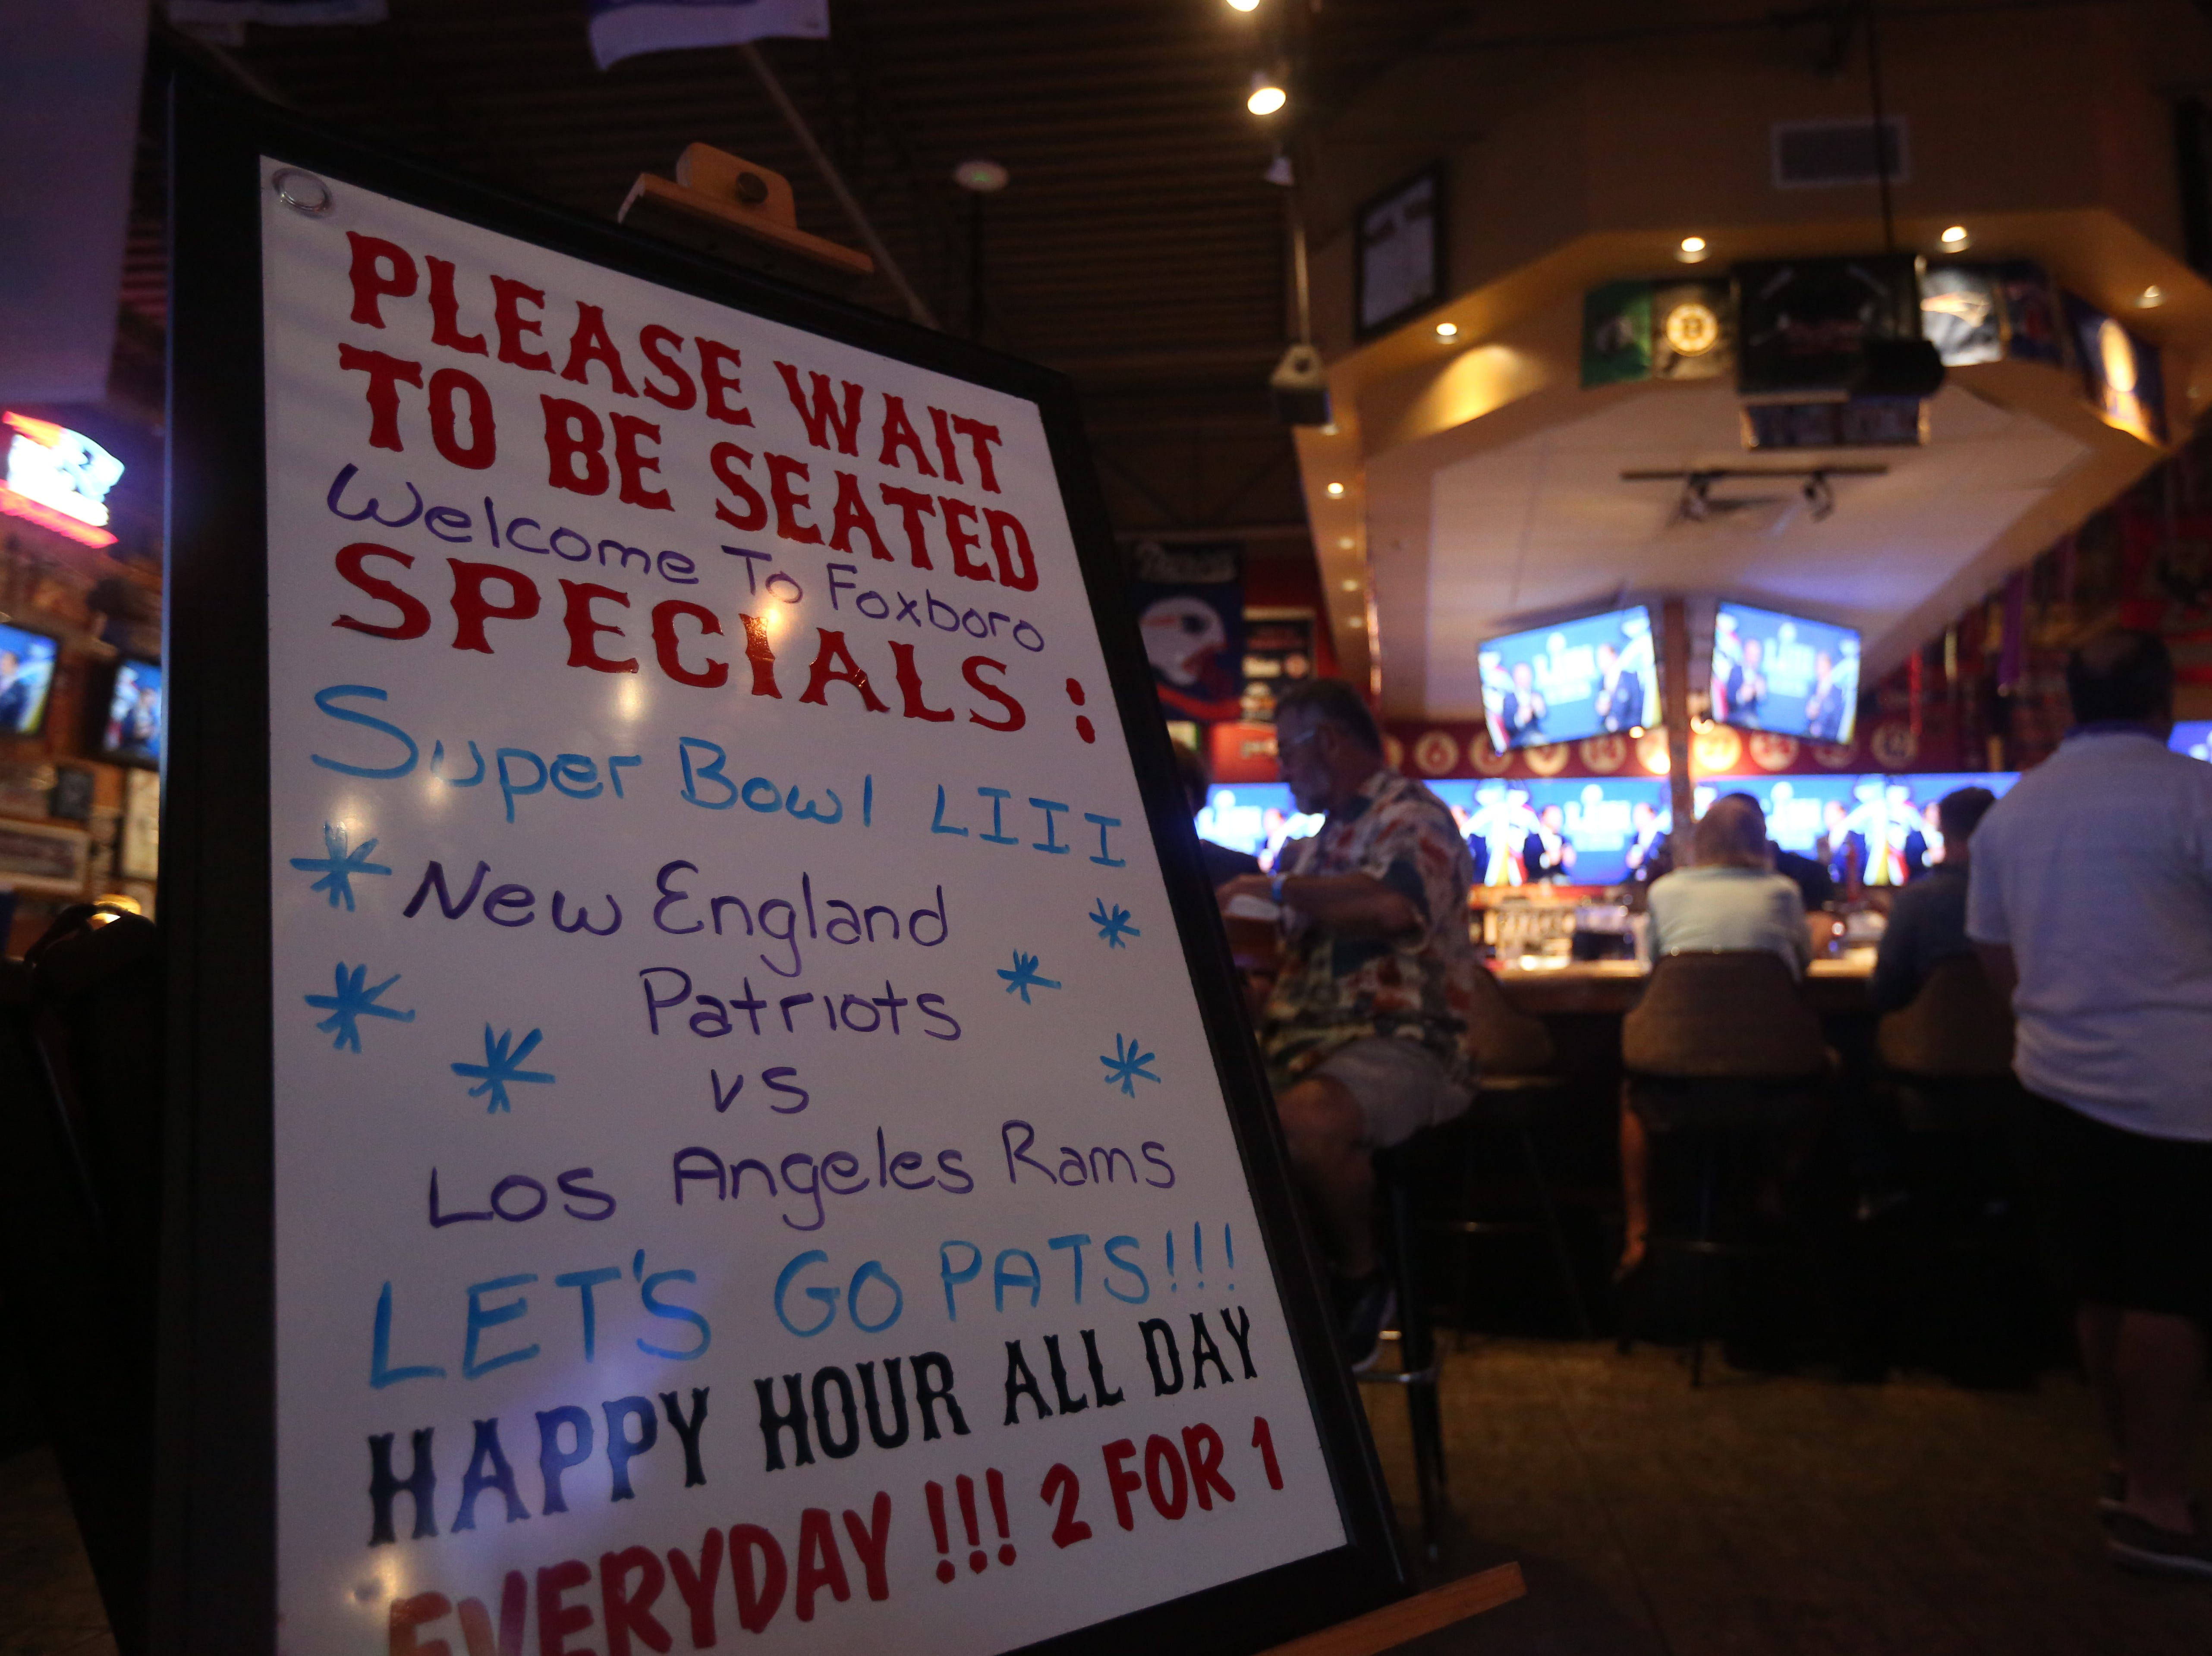 The Foxboro Sports Tavern in East Naples turns into an exclusive club for patrons who bought $35 tickets within days of the New England Patriots winning their final playoff game. Fans gathered for the game on Sunday, Feb. 3, 2019.